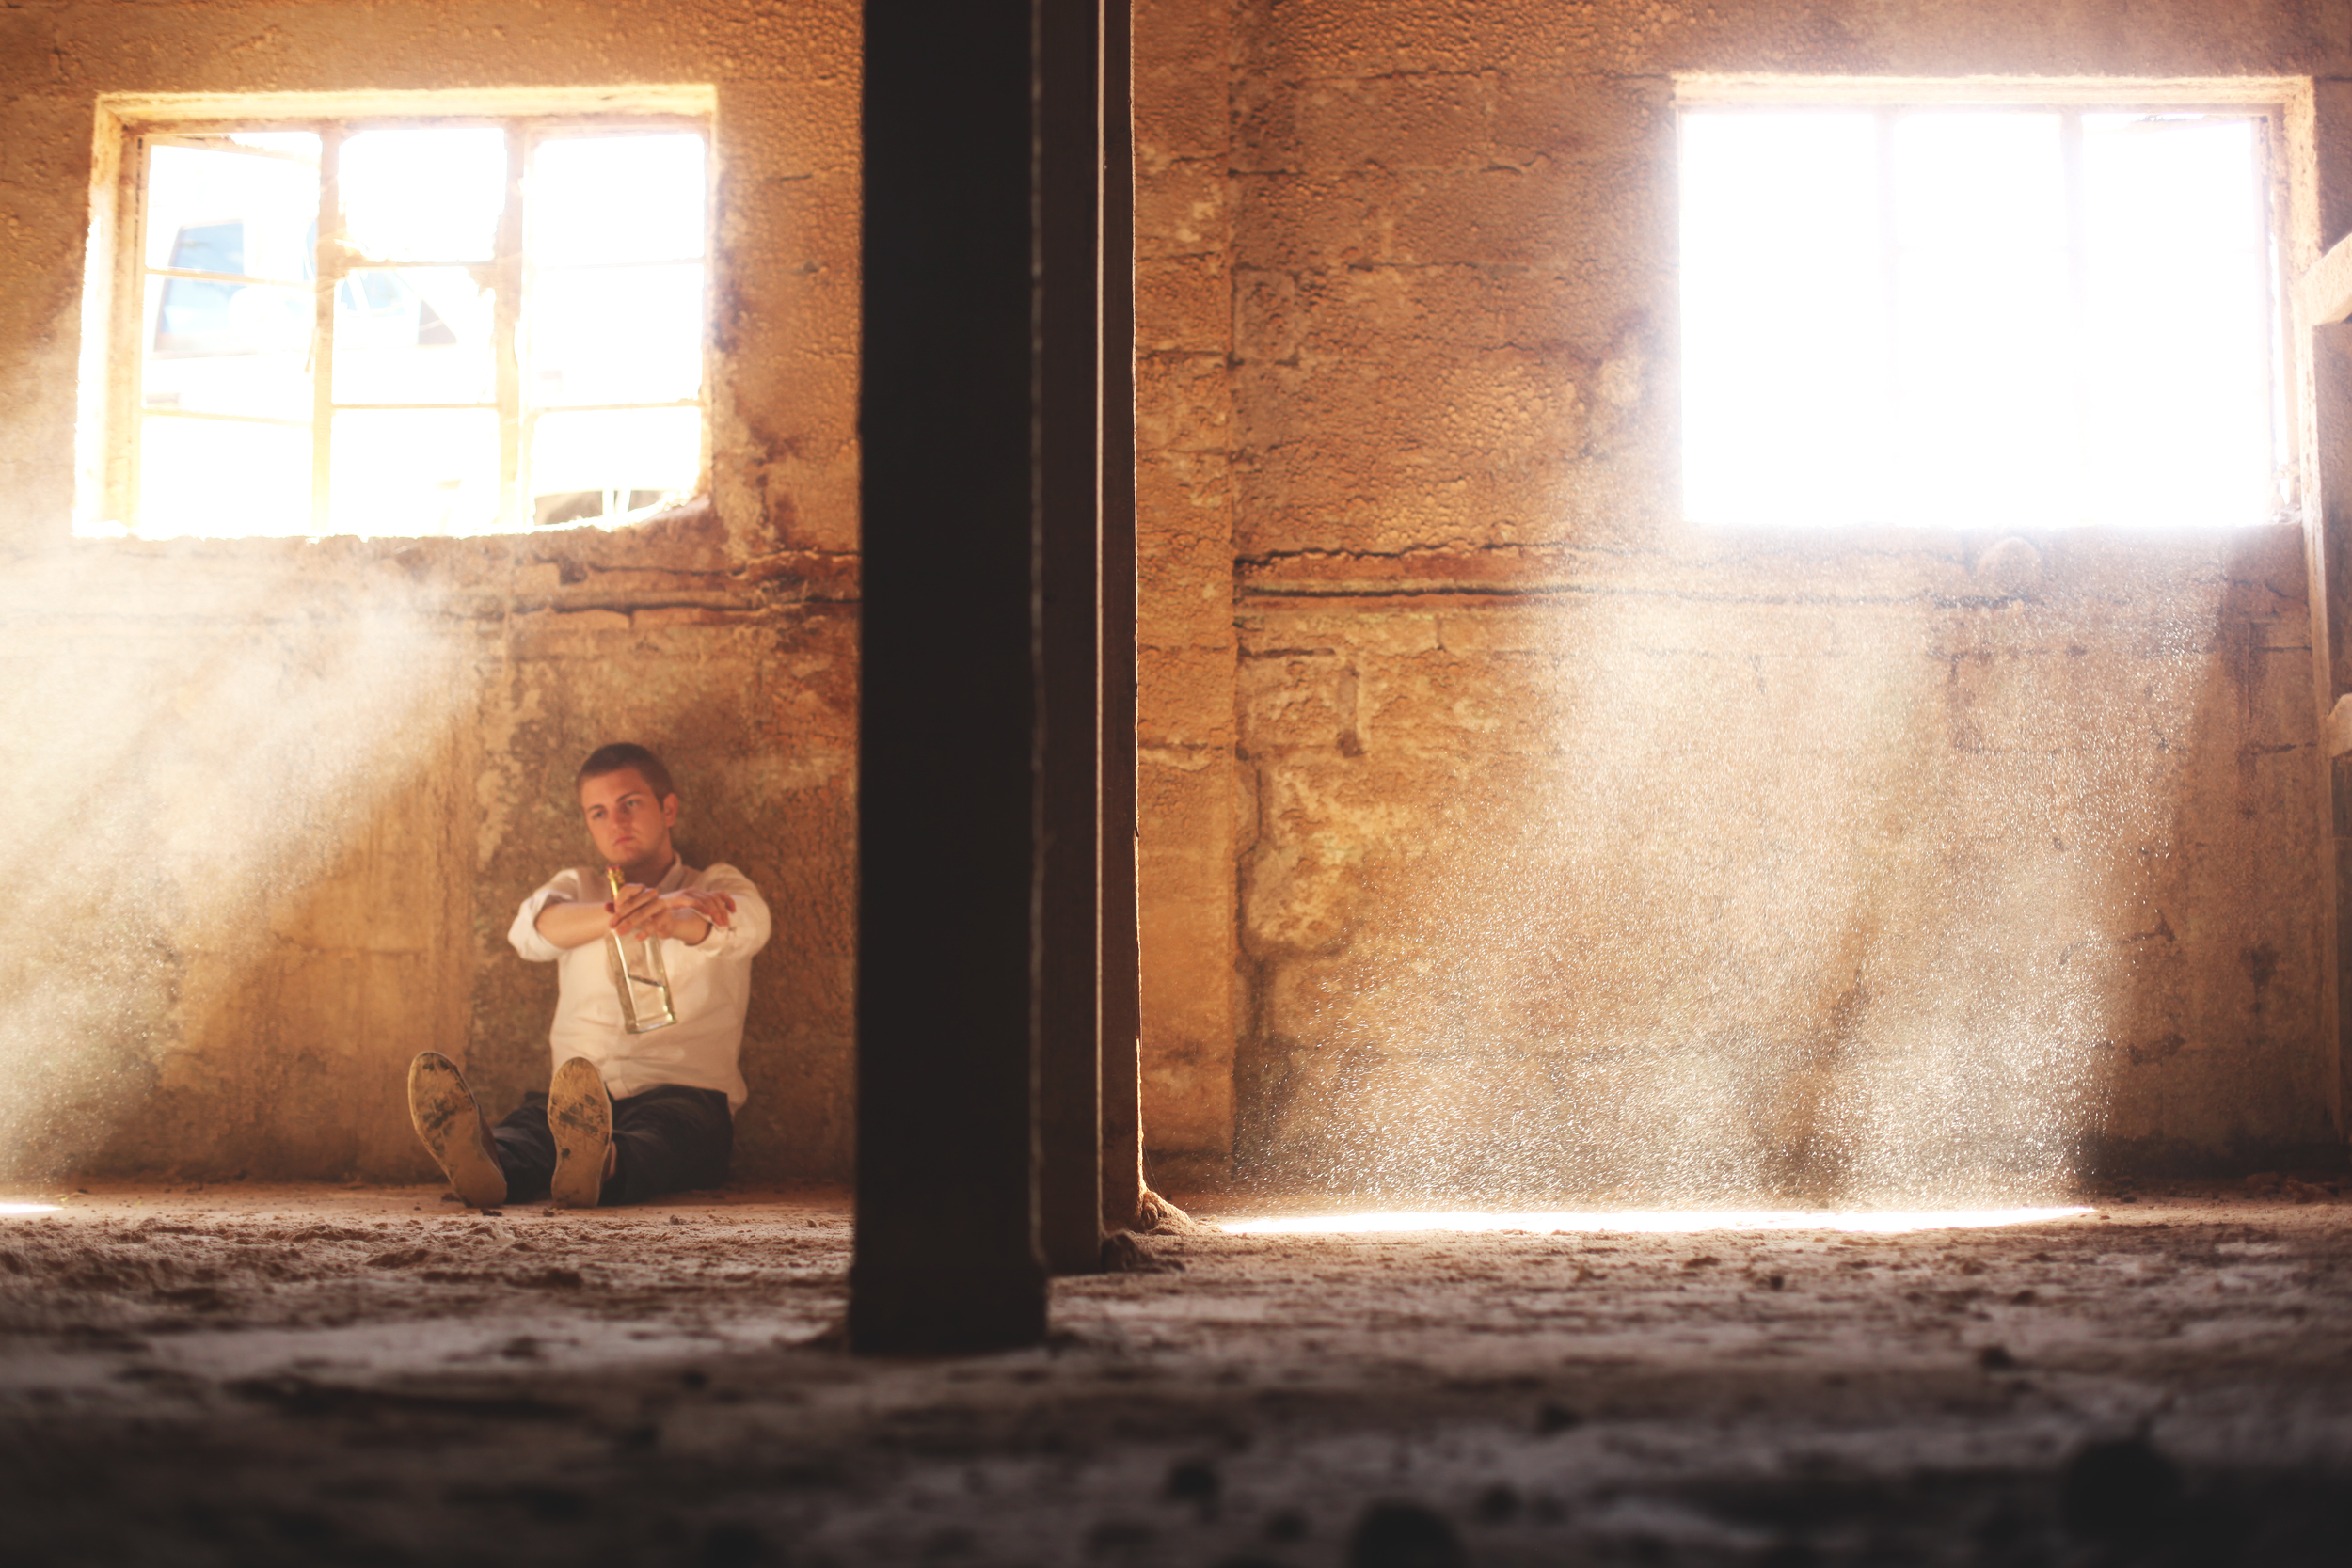 We can all identify with sitting in an abandoned building going through a bottle of vodka right...right?